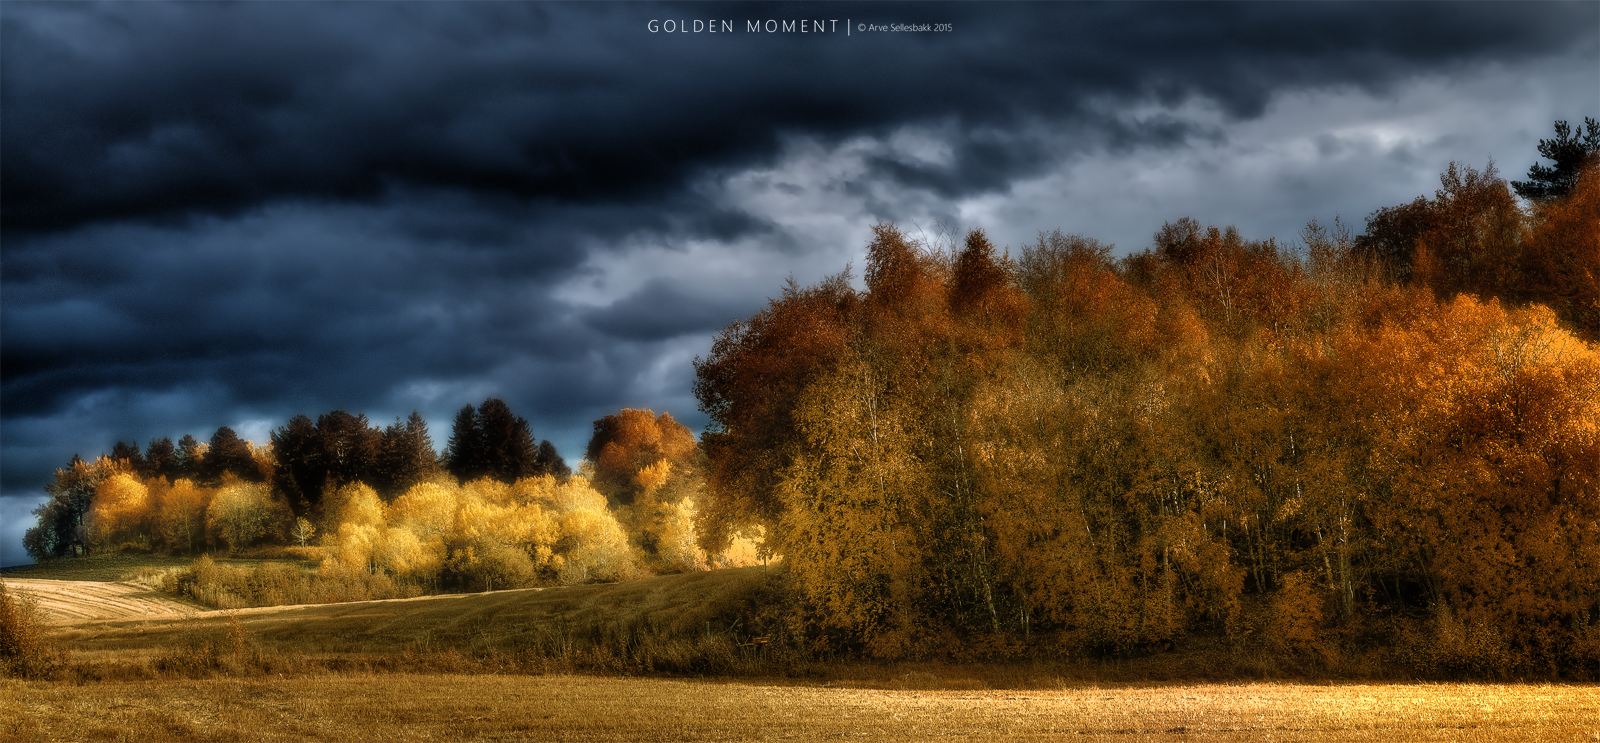 Golden Moment by Mr-Frenzy